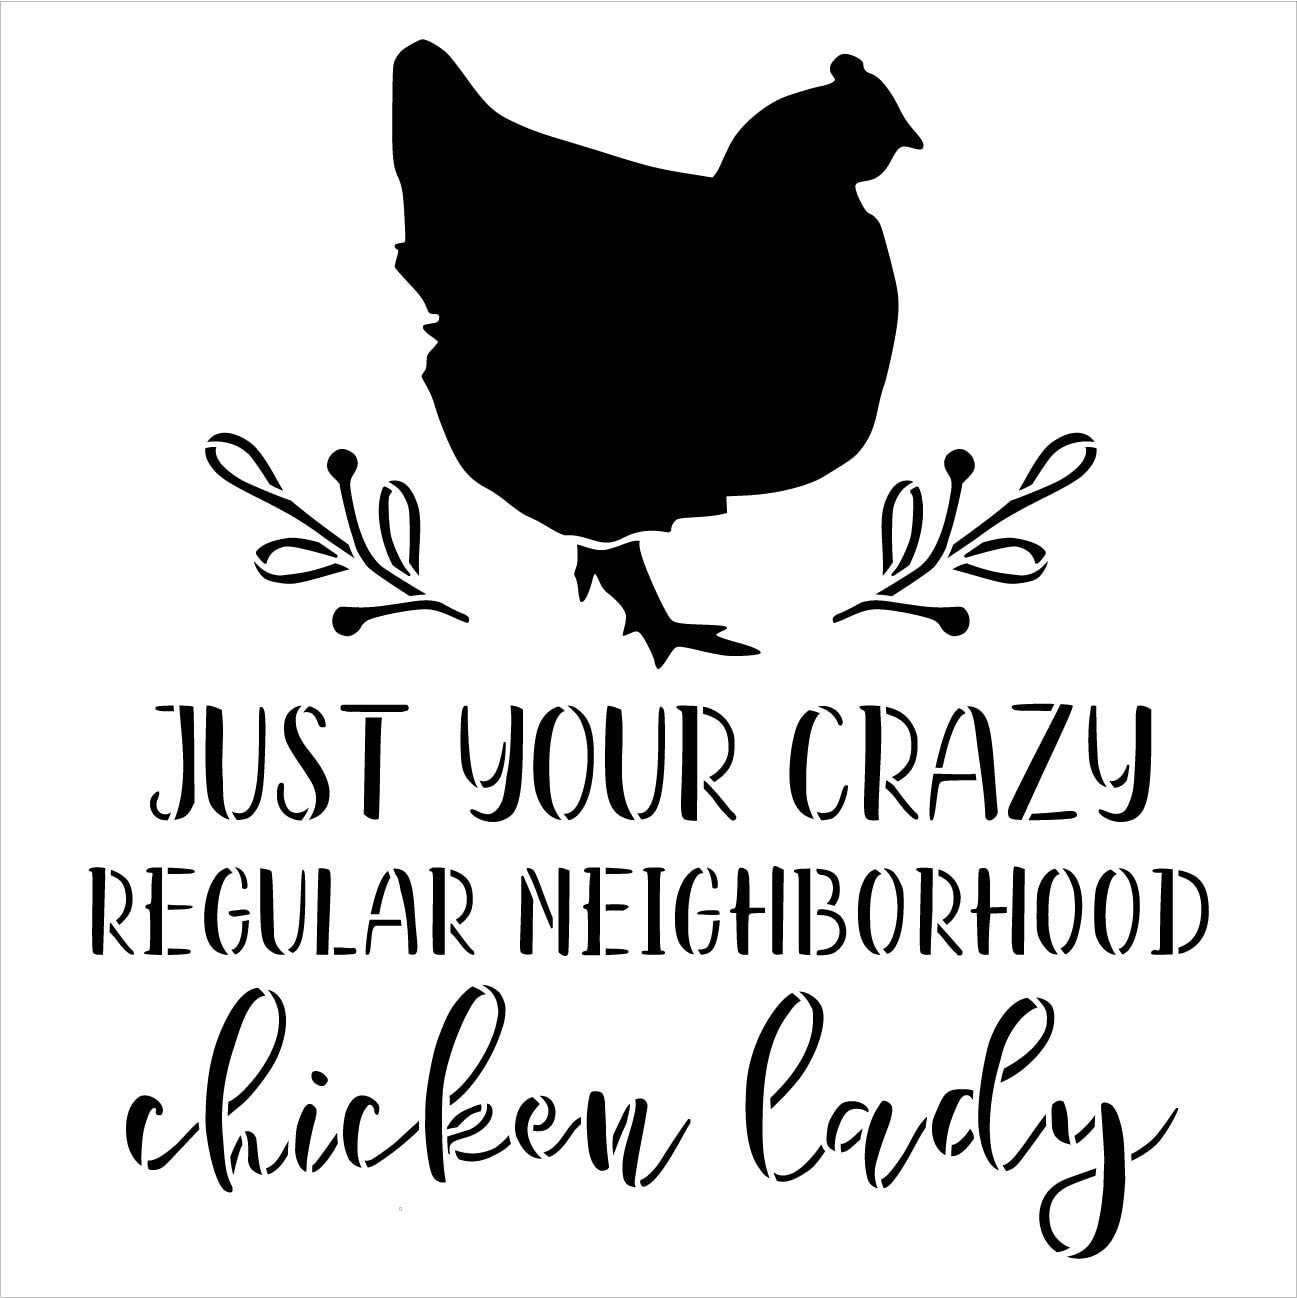 Crazy Neighborhood Chicken Lady Stencil by StudioR12   DIY Farmhouse Branch Home Decor   Craft & Paint Wood Sign   Reusable Mylar Template   Rustic Kitchen Barn   Select Size